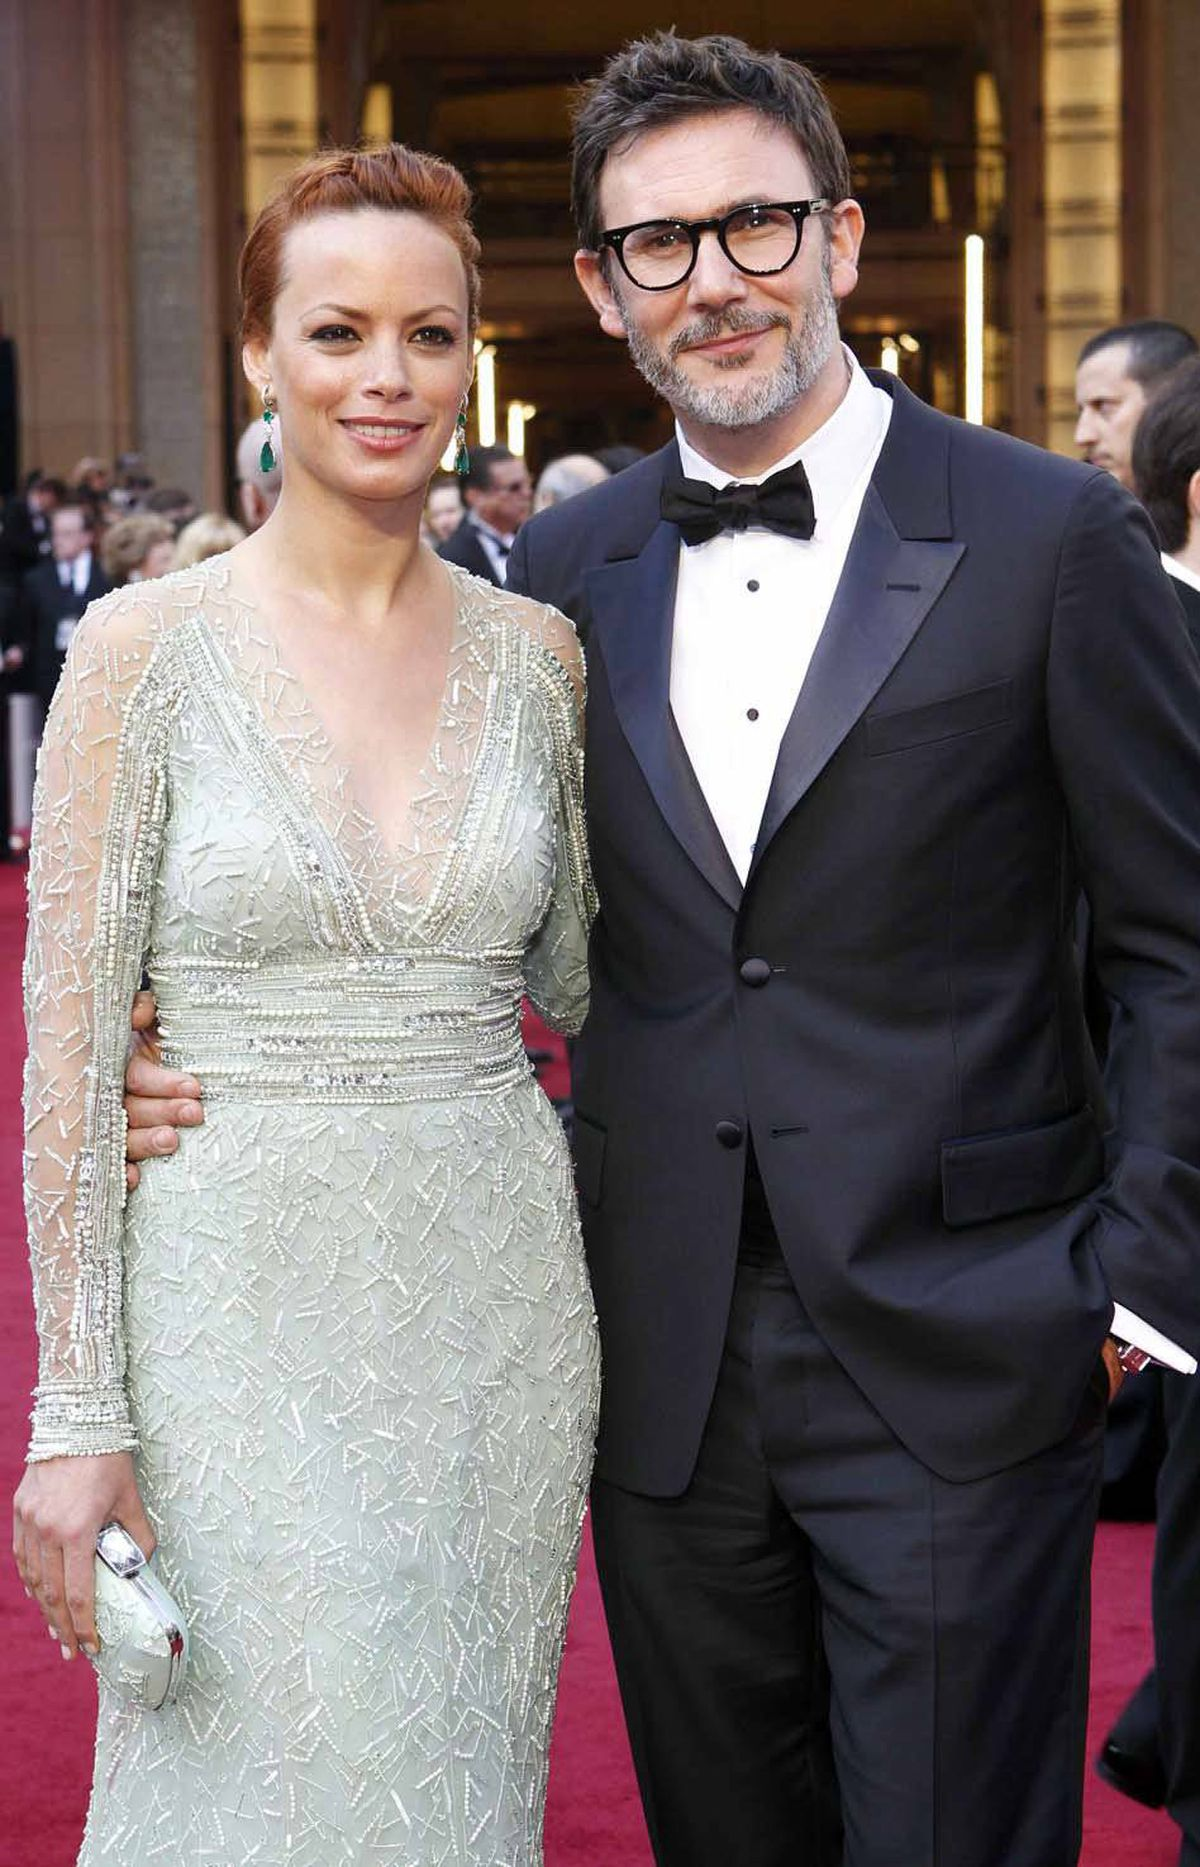 """Representing France, the Power Couple of the Night: Berenice Bejo, best supporting actress nominee for her role in """"The Artist"""", and her husband, Michel Hazanavicius, best director nominee for the same film."""